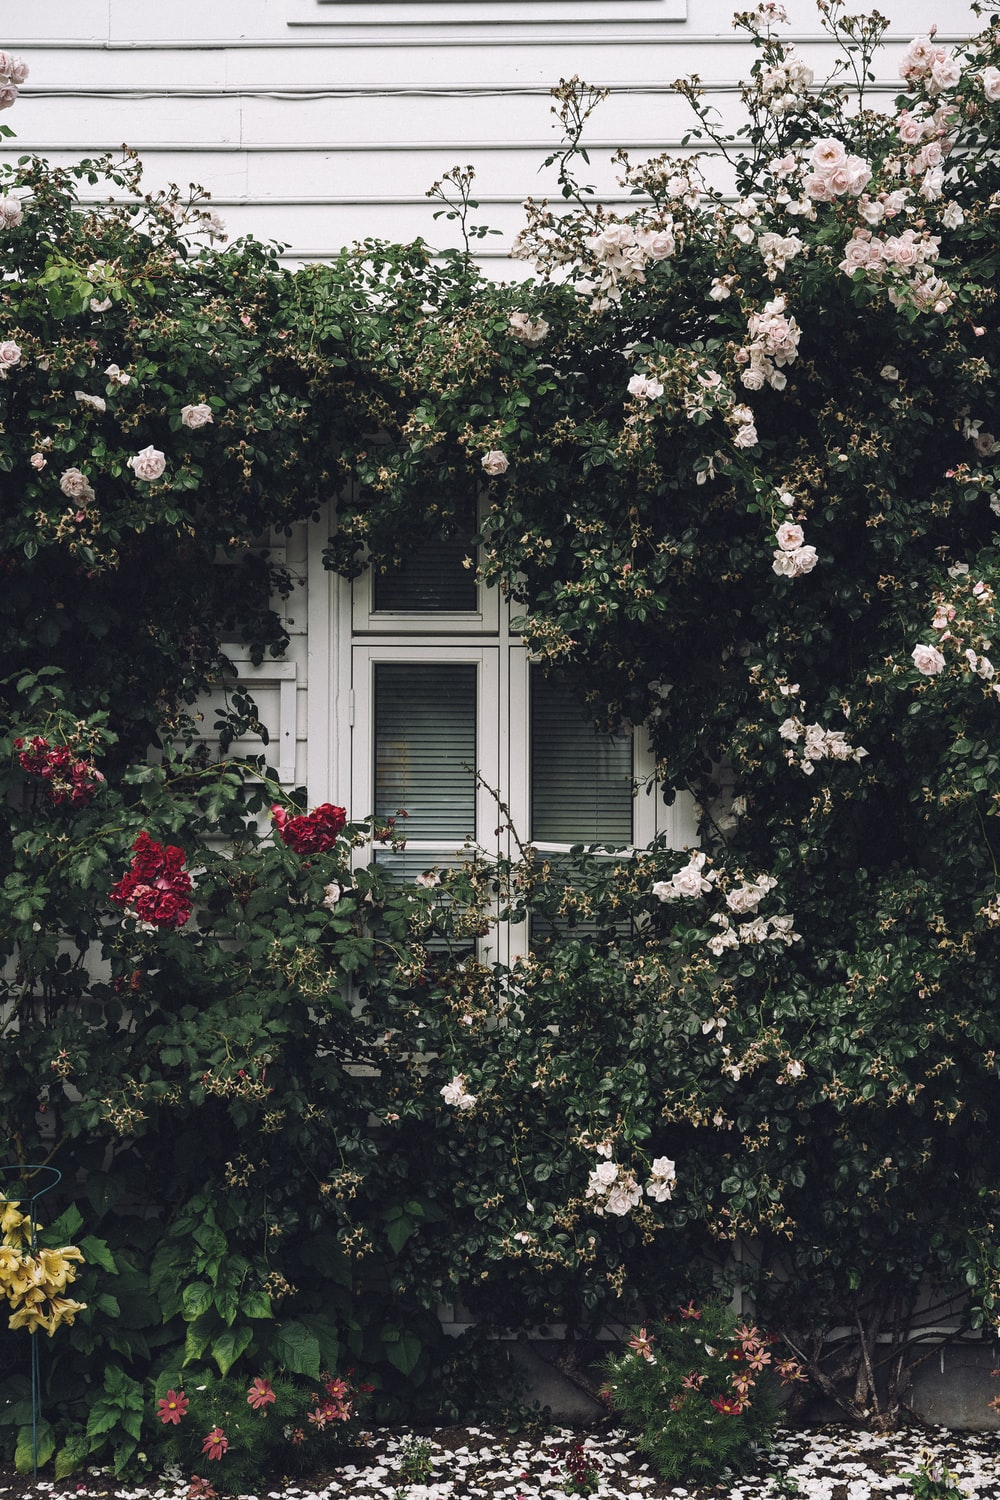 white painted wooden house filled with flowers